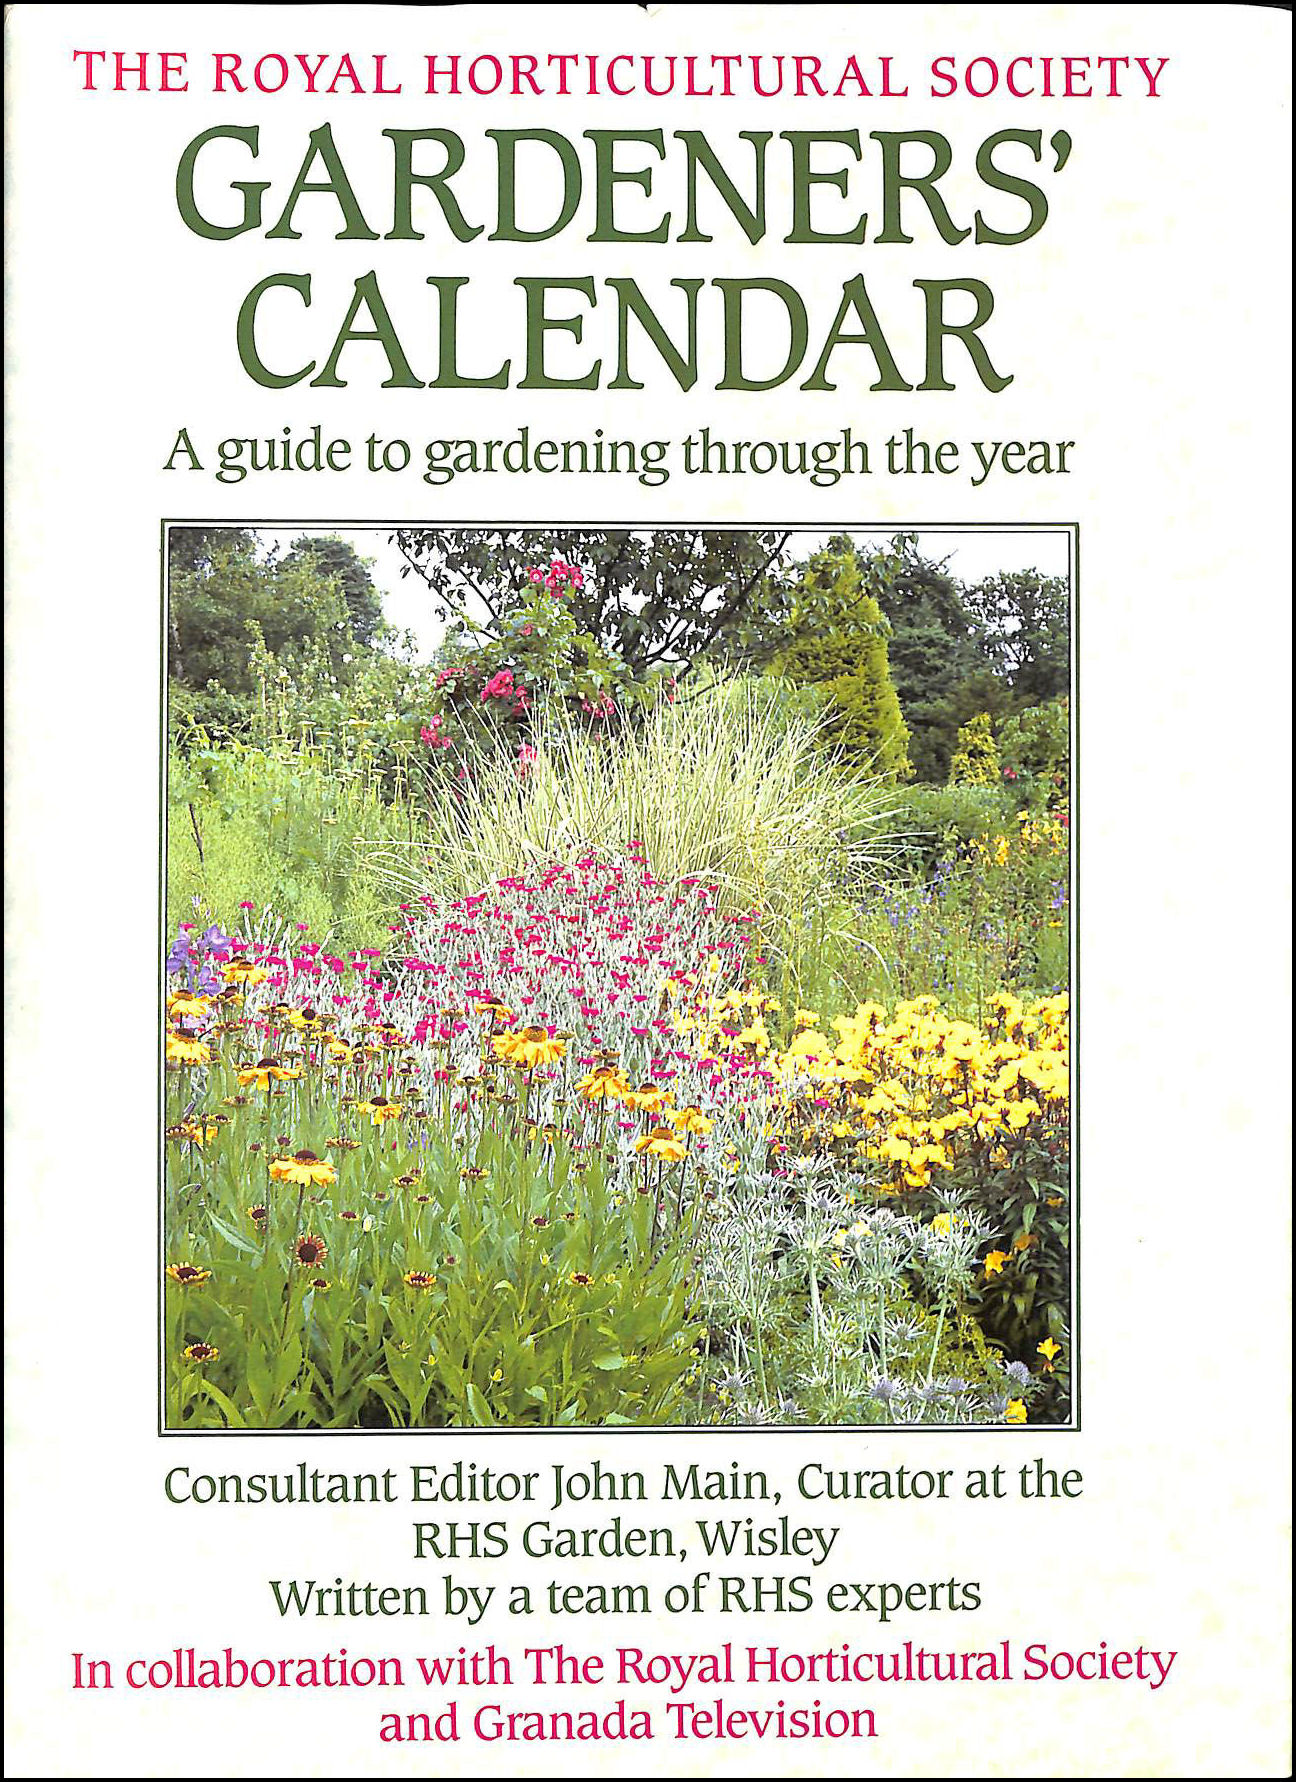 The Royal Horticultural Society Gardeners' Calendar. A Guide To Gardening Through The Year., Main John